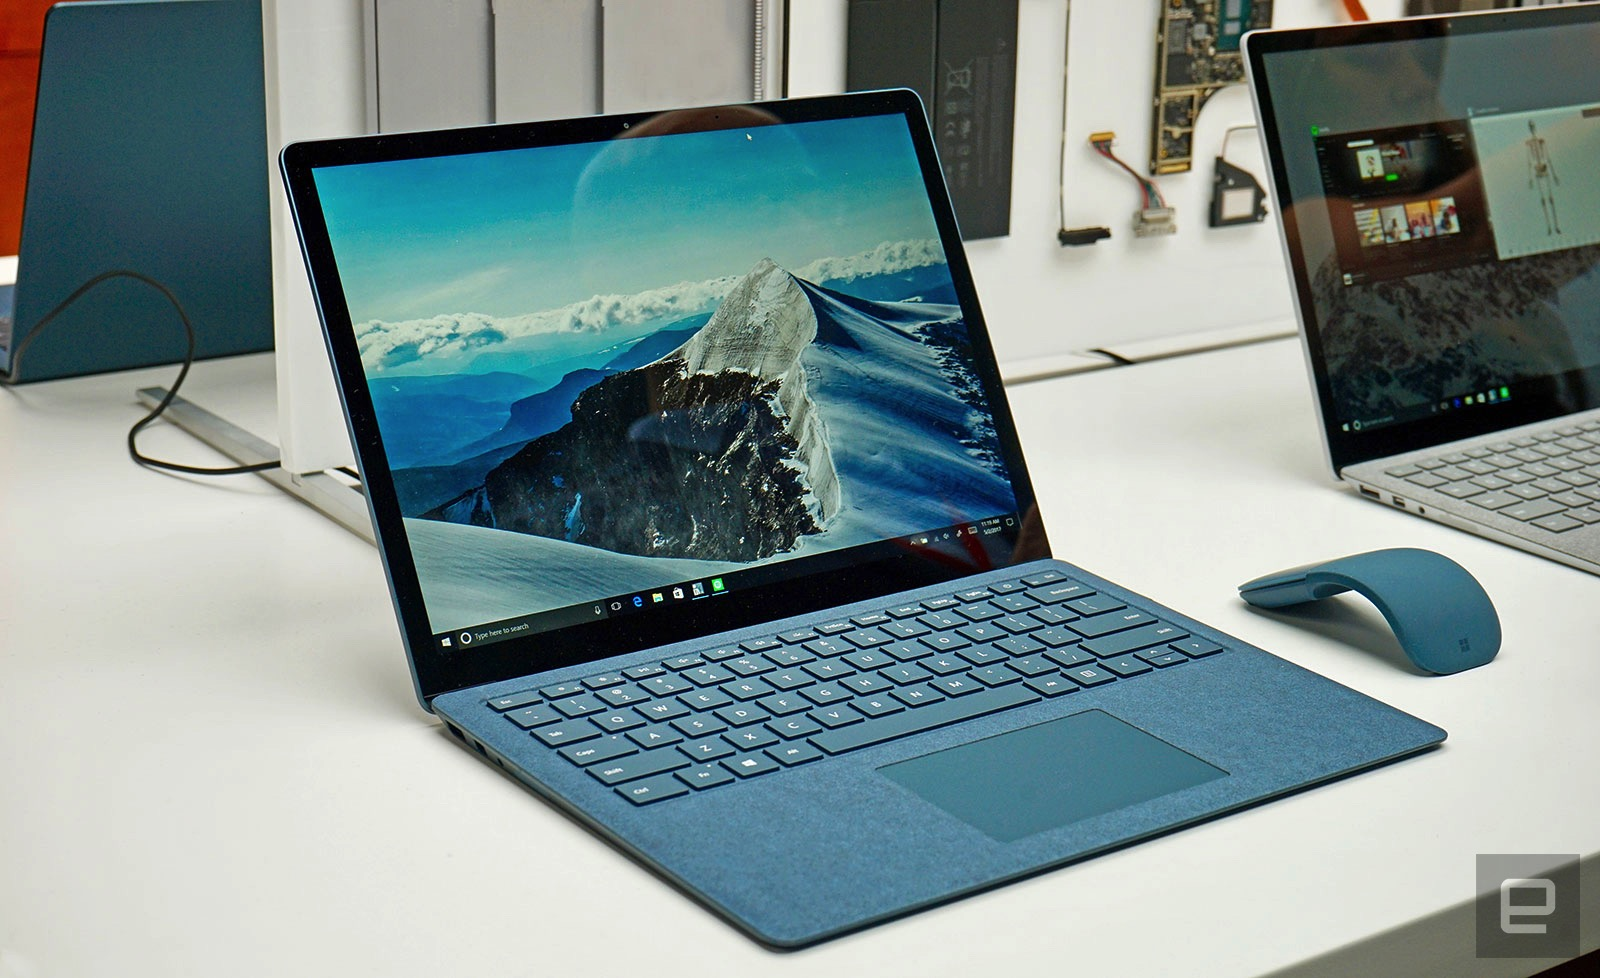 microsoft 39 s surface laptop doesn 39 t need gimmicks to be special. Black Bedroom Furniture Sets. Home Design Ideas